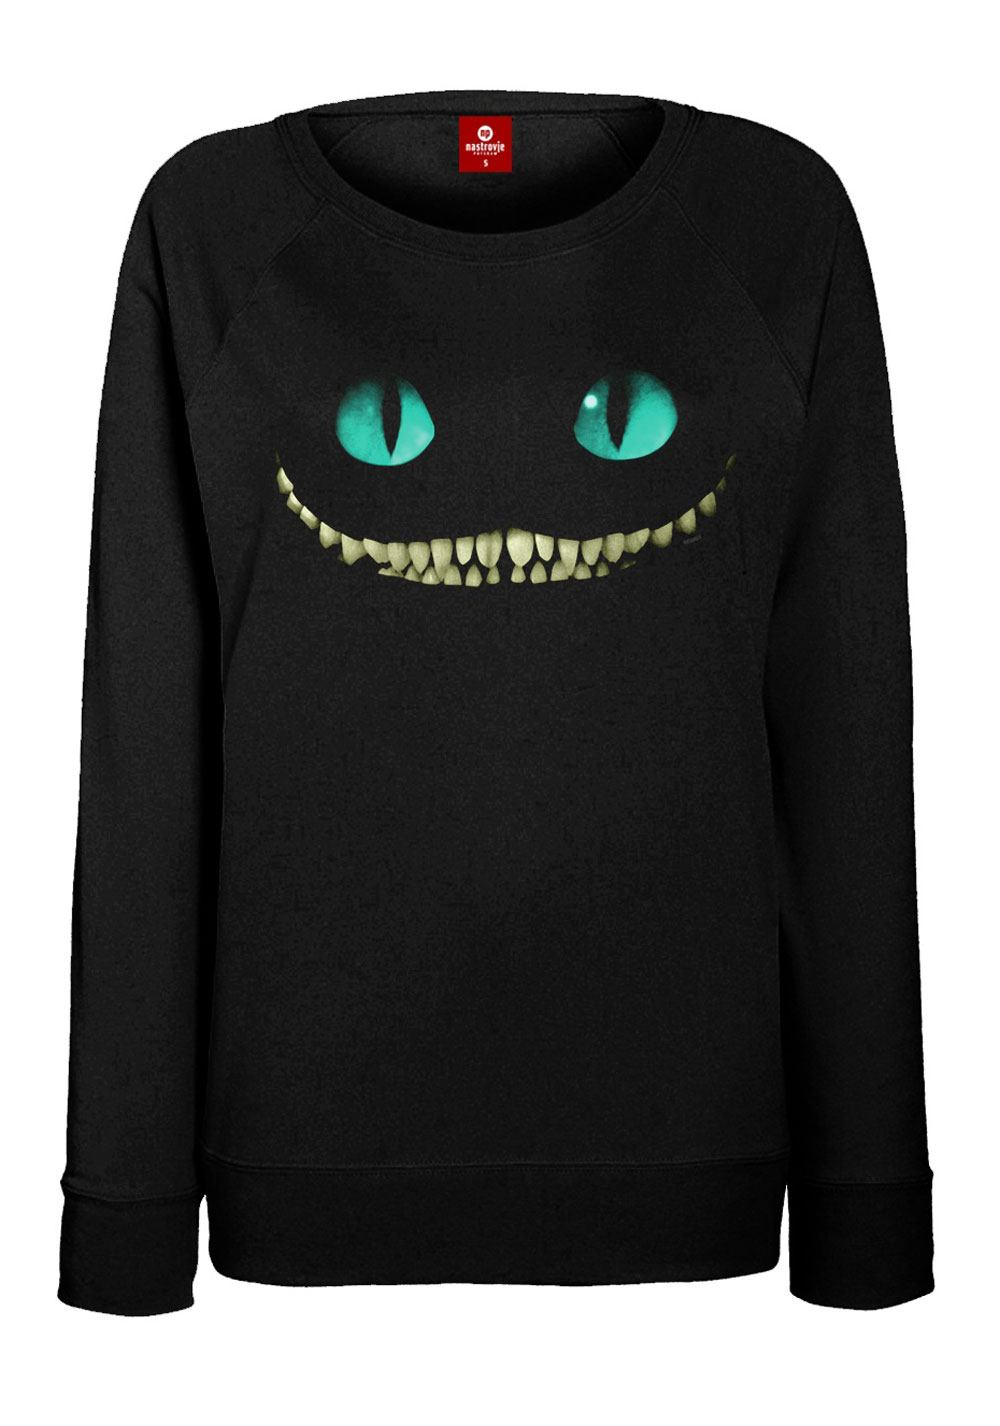 Alice in Wonderland Ladies Sweater Smile Size M